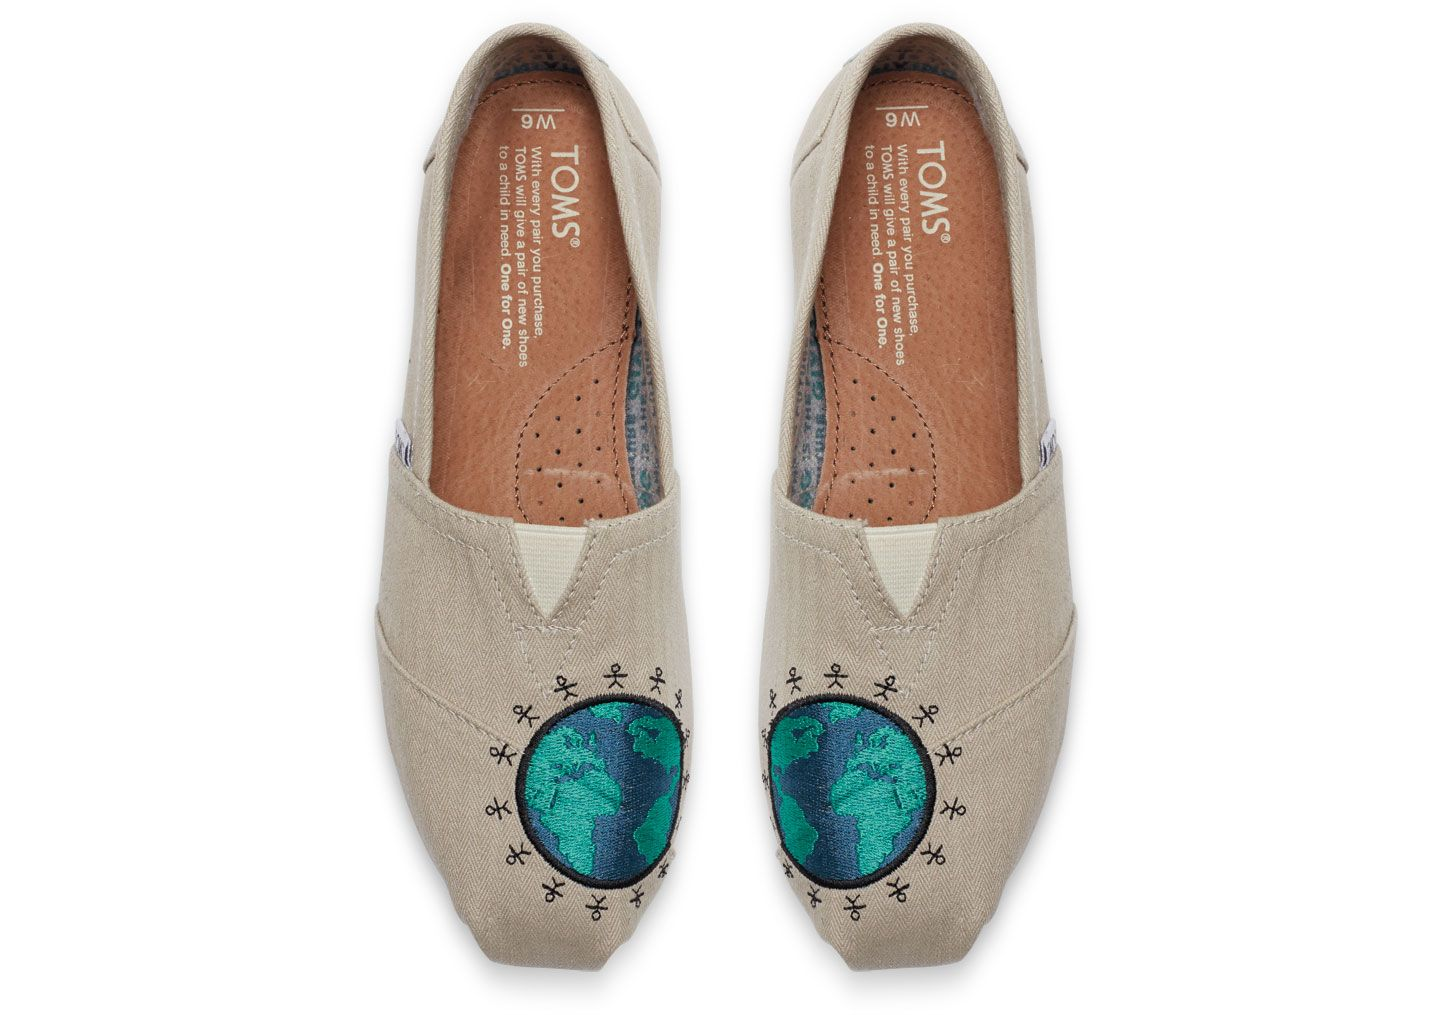 db1445cae1a undefined Giving Embroidered Globe Women s Classics Tom Brands